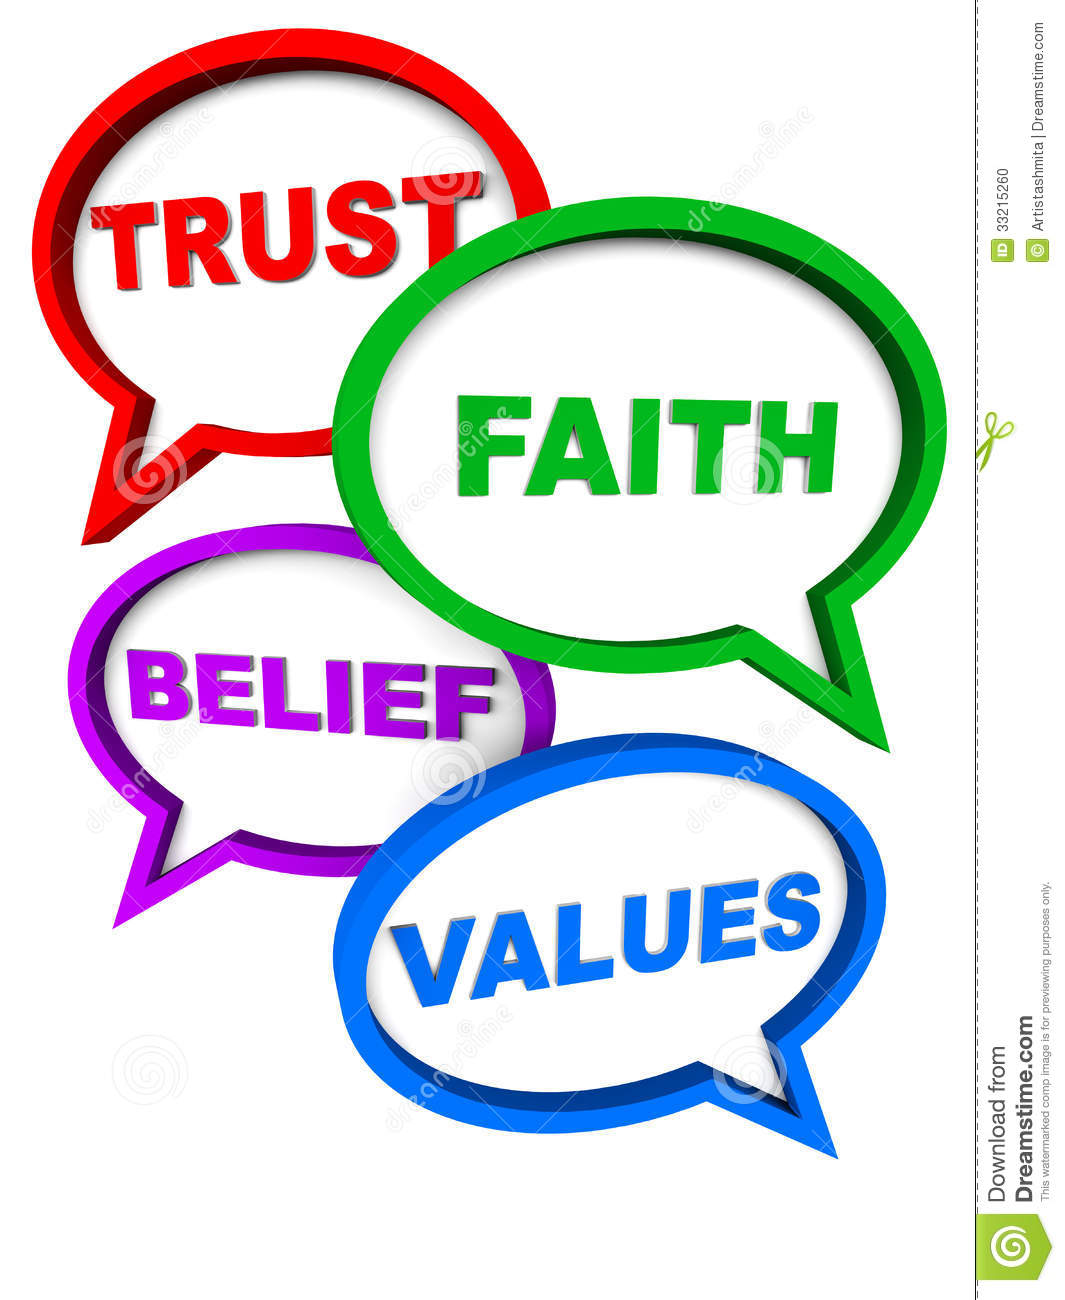 Belief clipart 6 » Clipart Station.